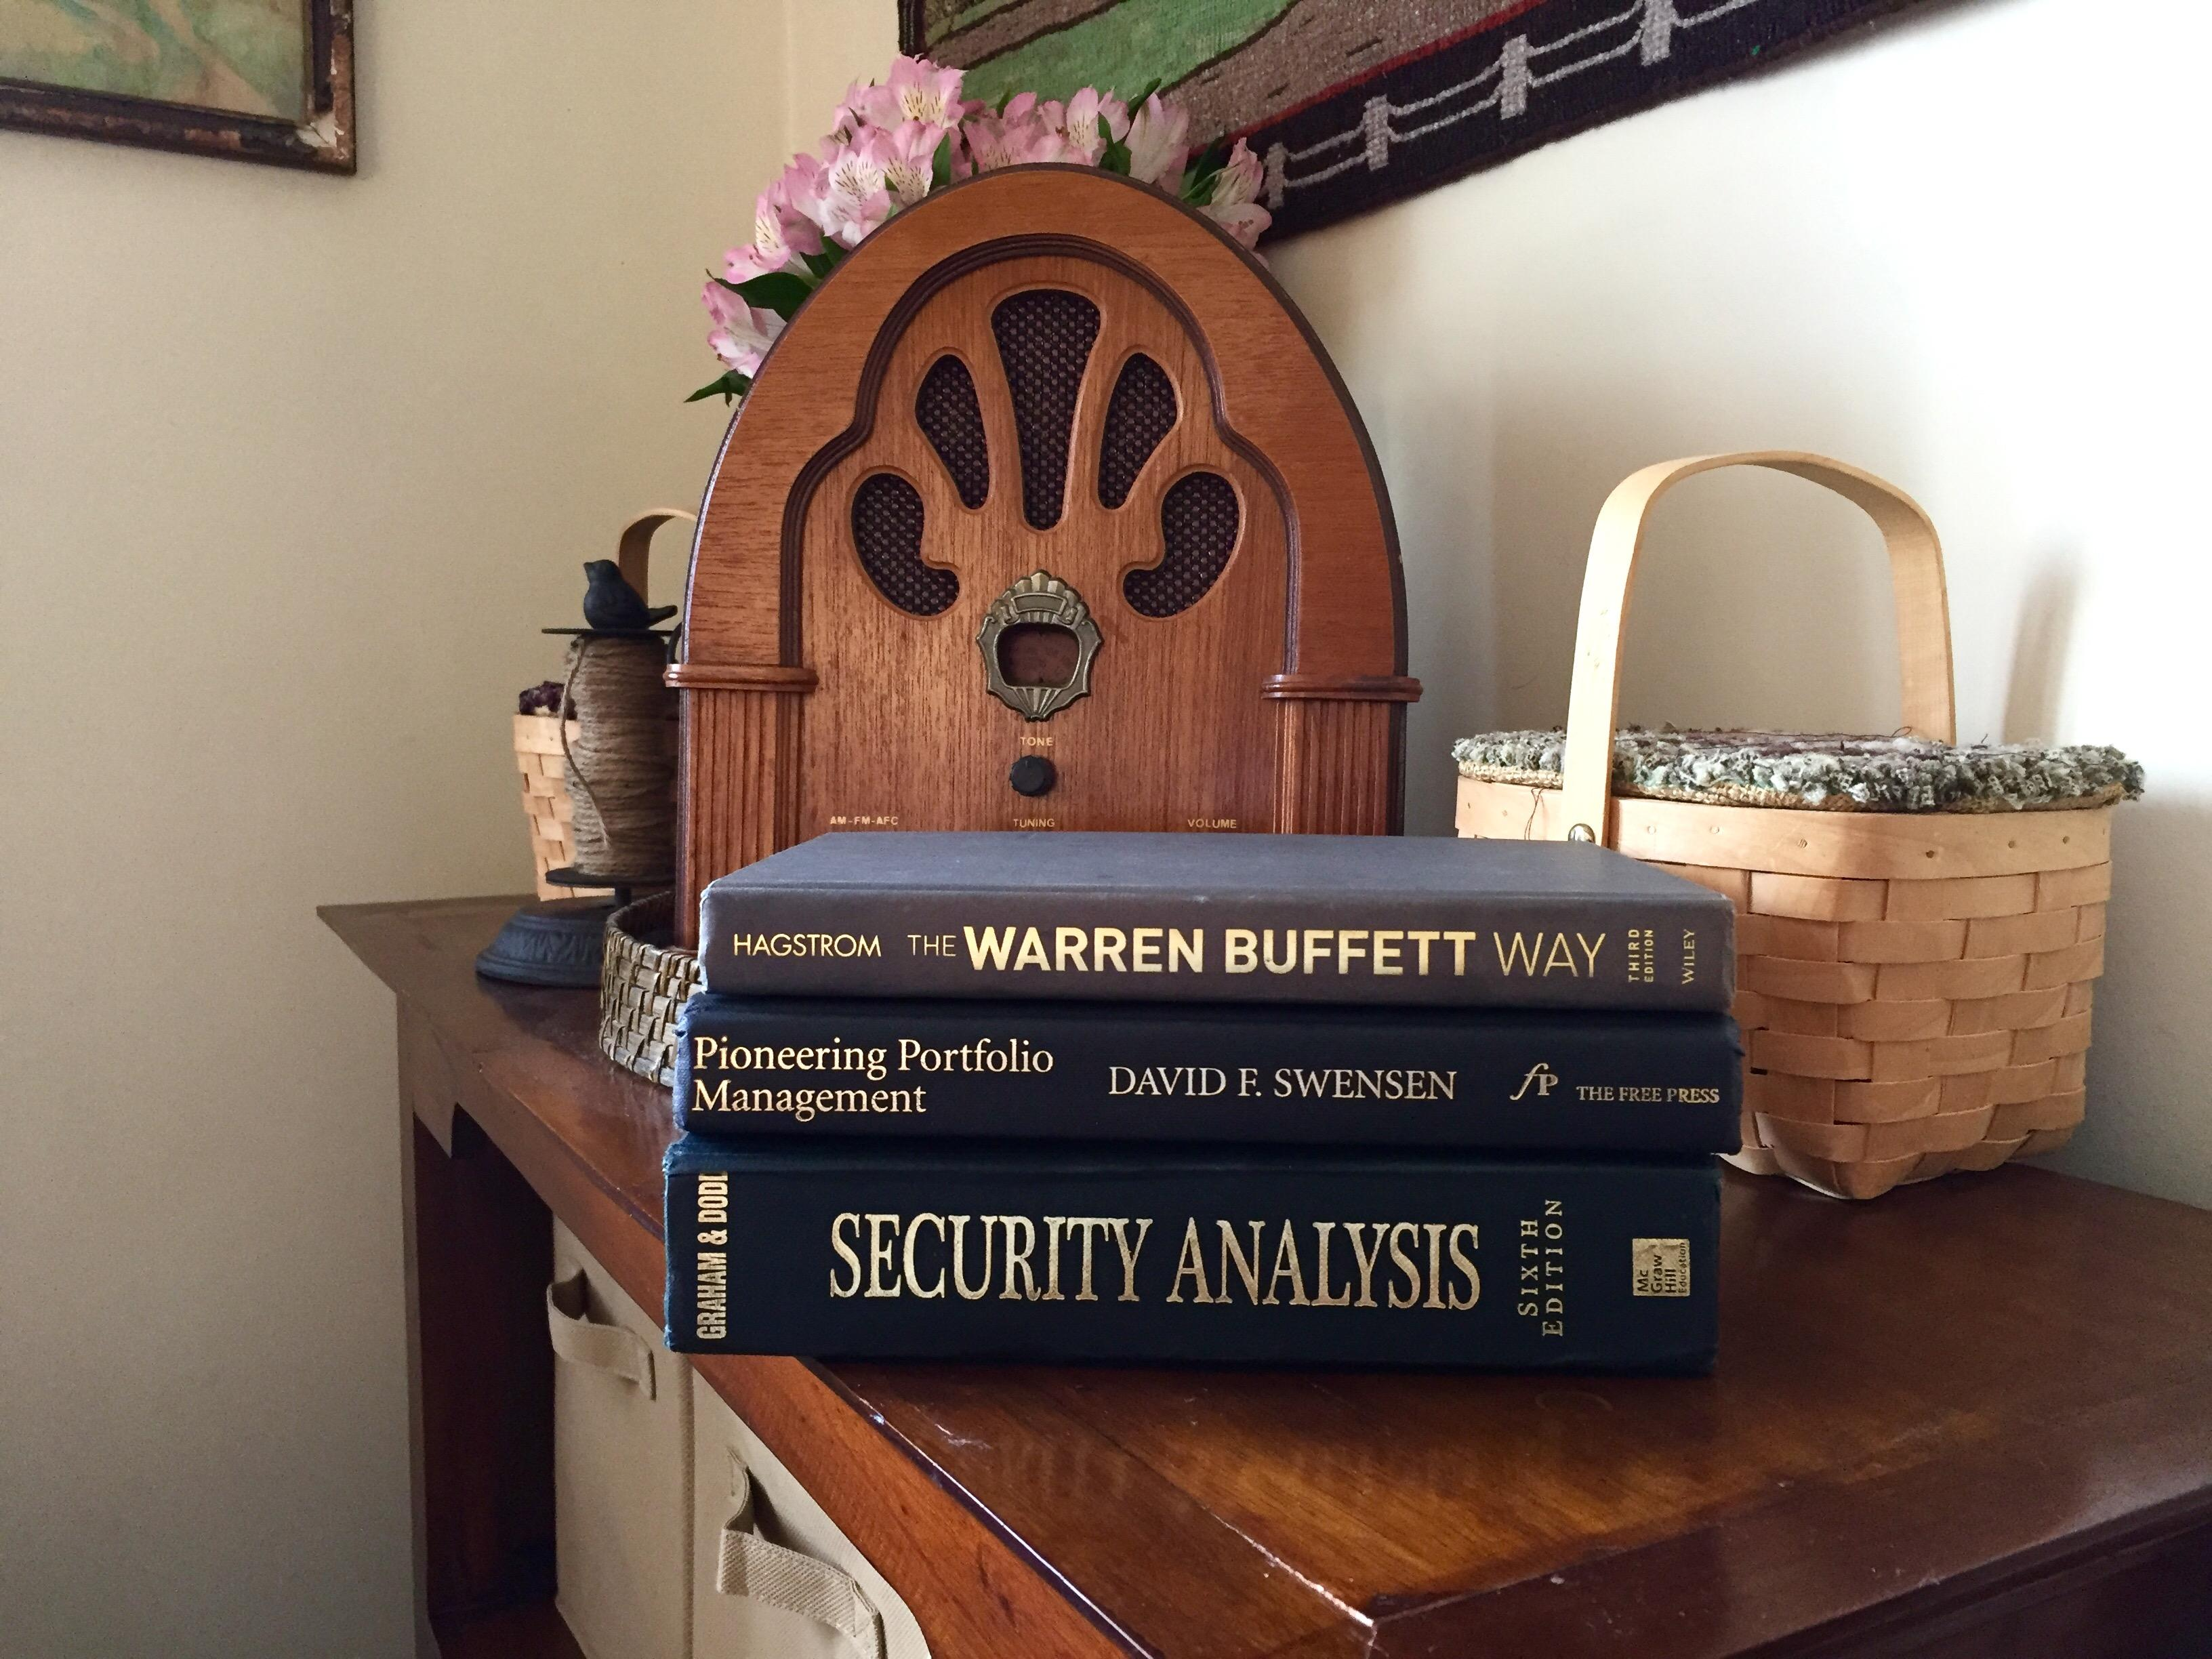 3 Books That Shaped My Investment Philosophy